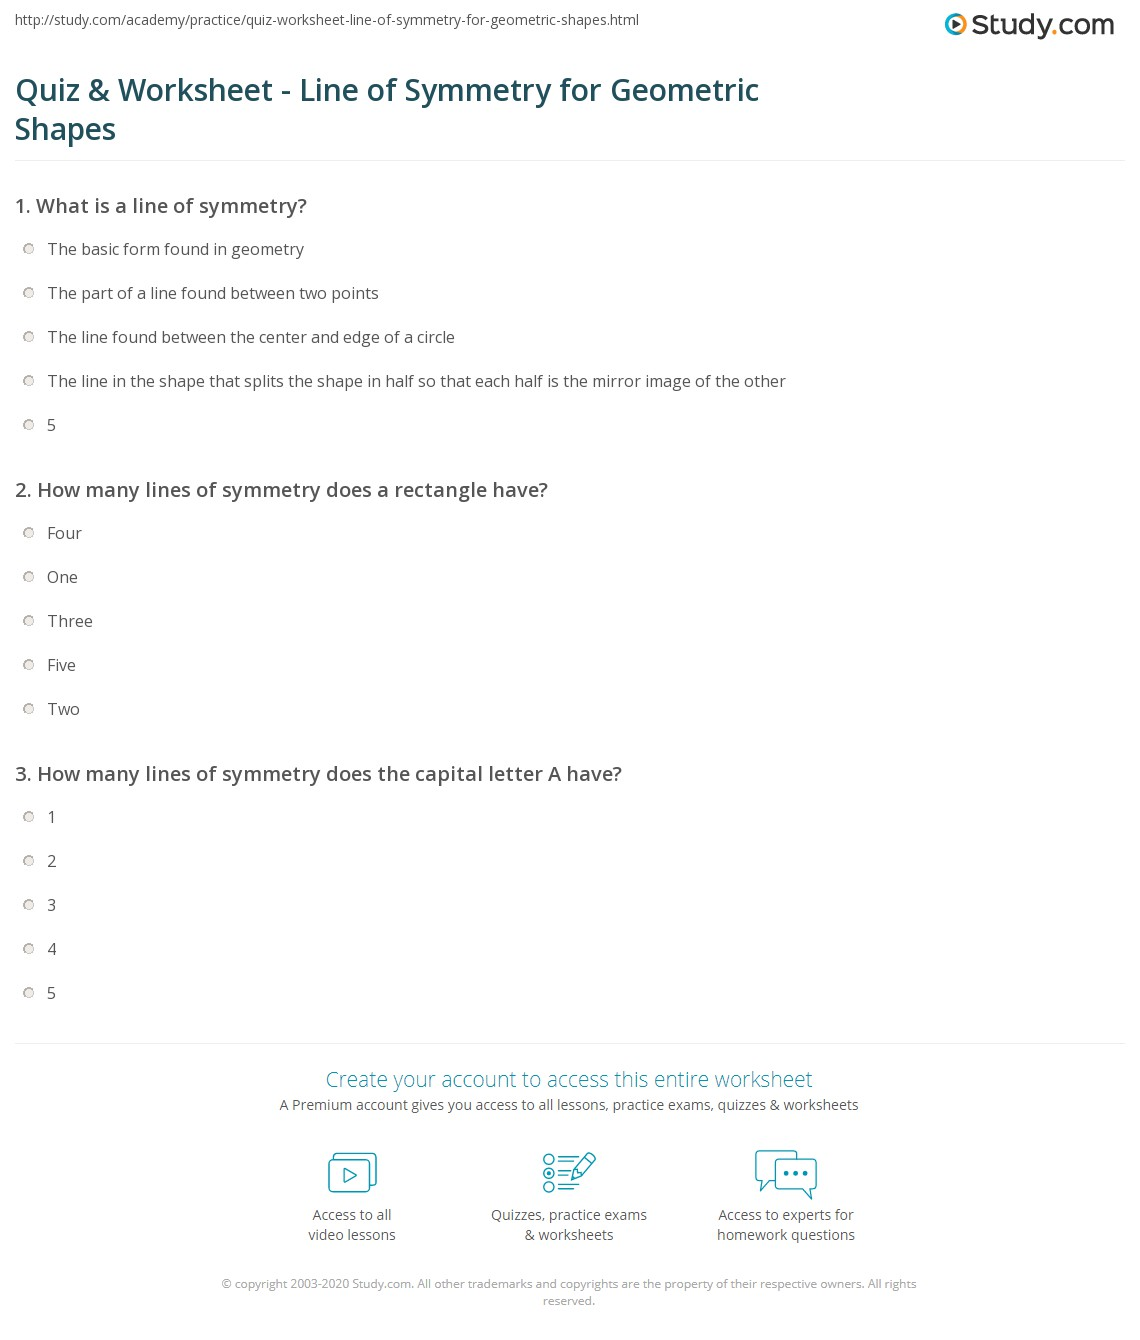 Worksheets Lines Of Symmetry Worksheet quiz worksheet line of symmetry for geometric shapes study com print what is a in worksheet